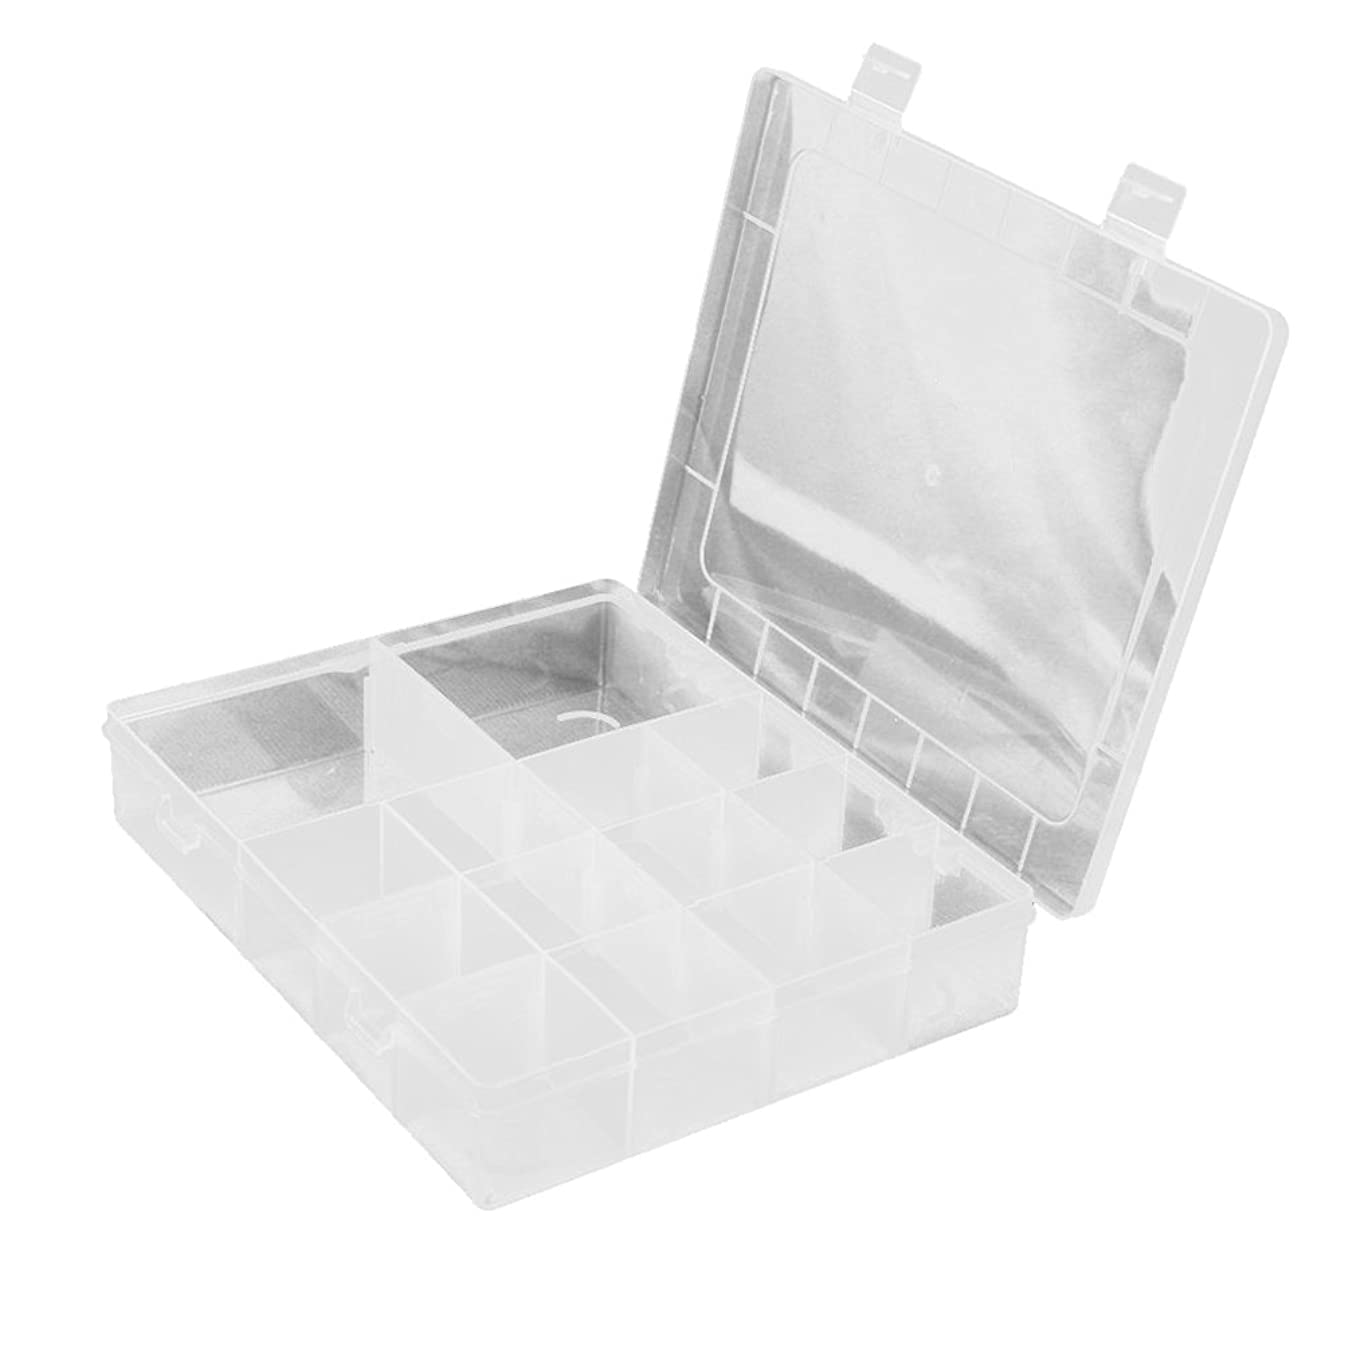 OULII 14-Grid Plastic Jewelry Box Organizer Storage Container Case with Removable Dividers (Transparent)